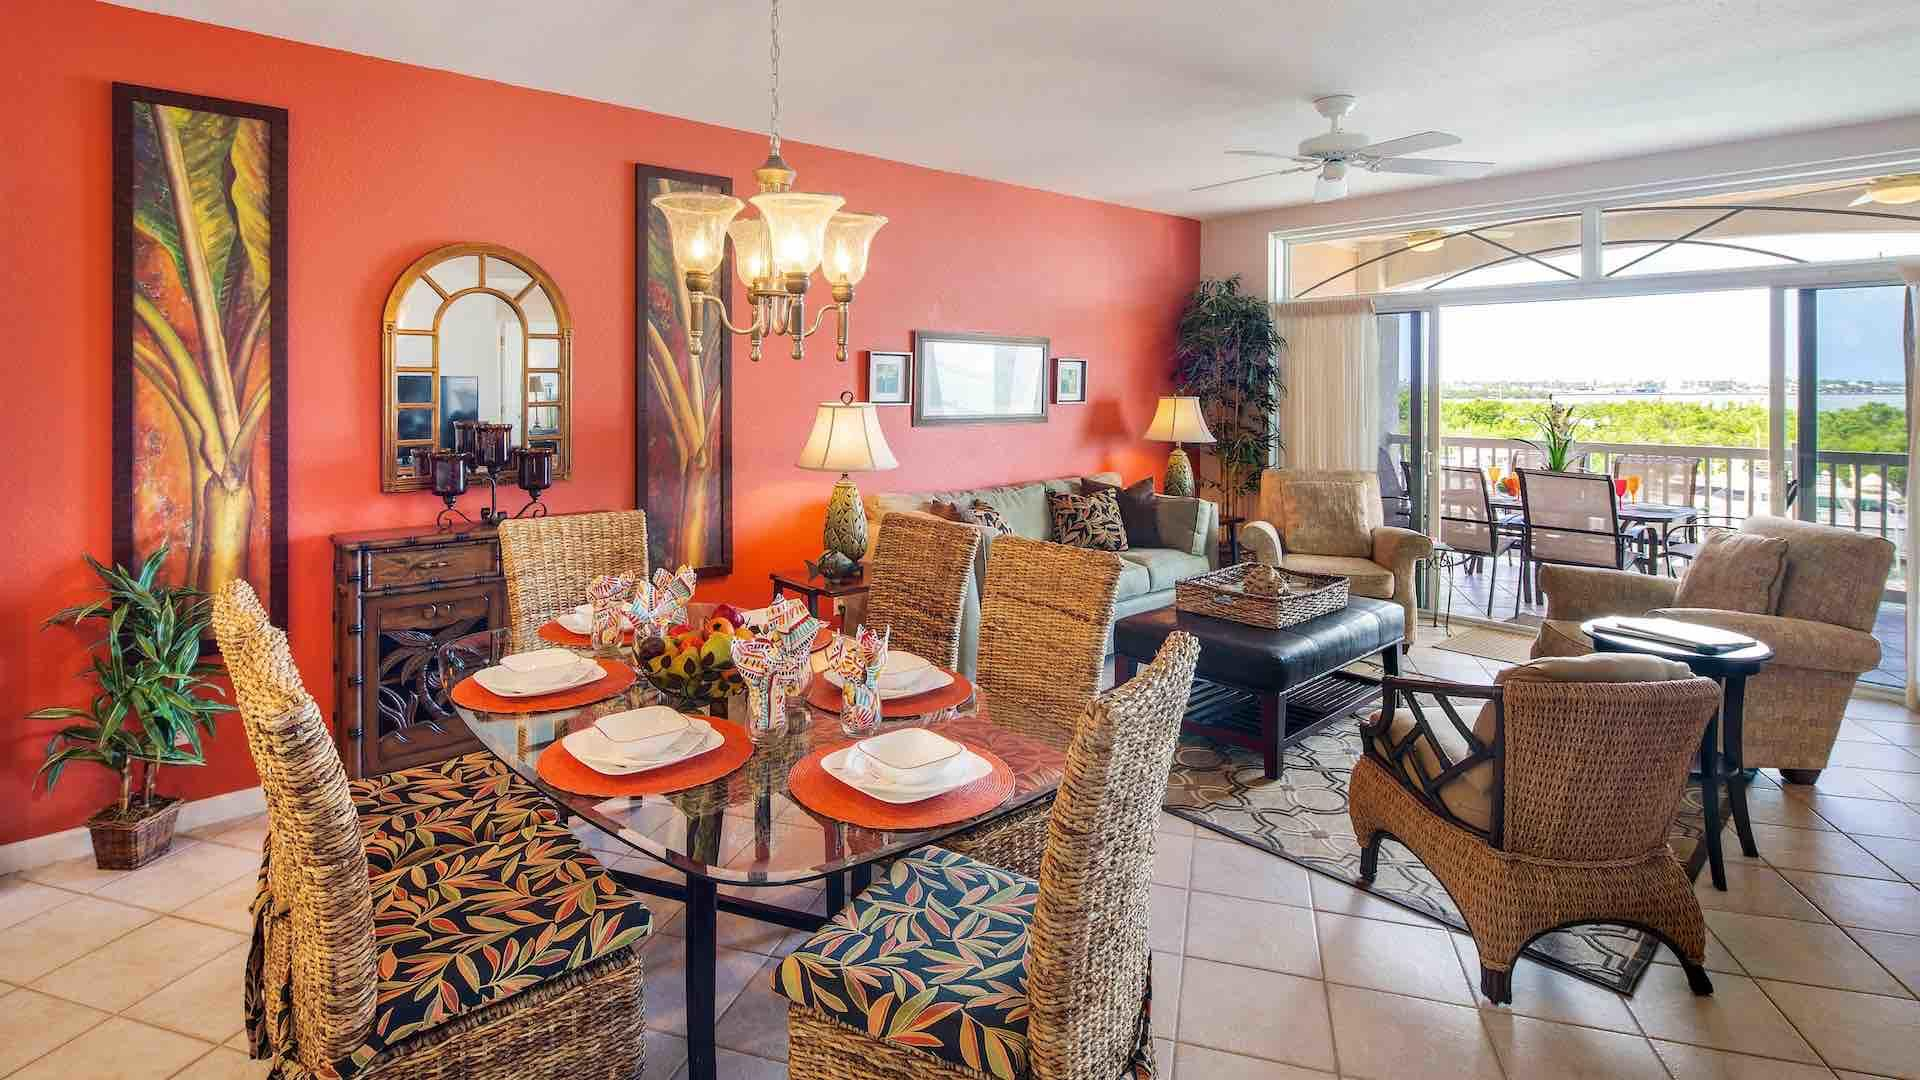 This 1658 square foot condo has been designed and furnished to a level you will seldom see in a vacation home...